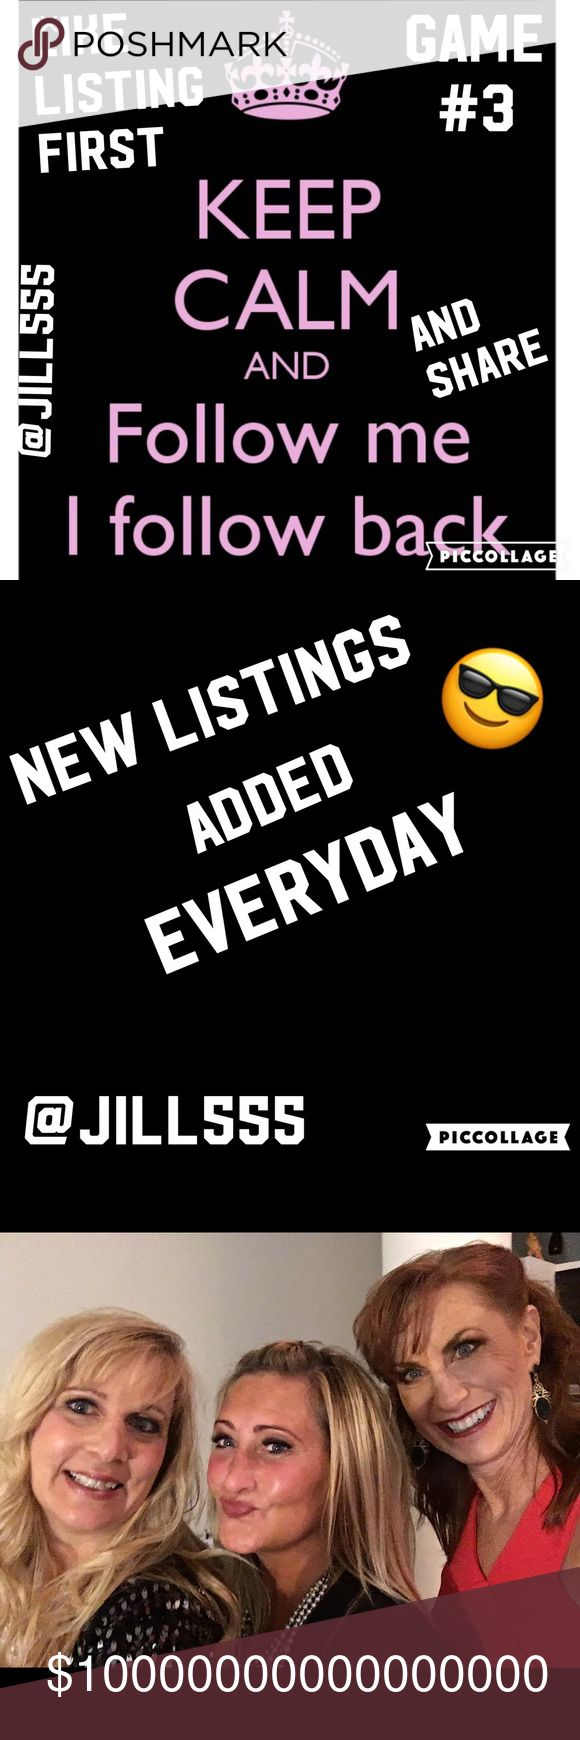 🎈FOLLOW GAME #3🎈LIKE, FOLLOW, SHARE🎈 🎈Like this listing first and follow and then share. Check back often to follow the new people that have joined.  Grow your network! Sharing is caring! 🎈💕👭💕👭 Other